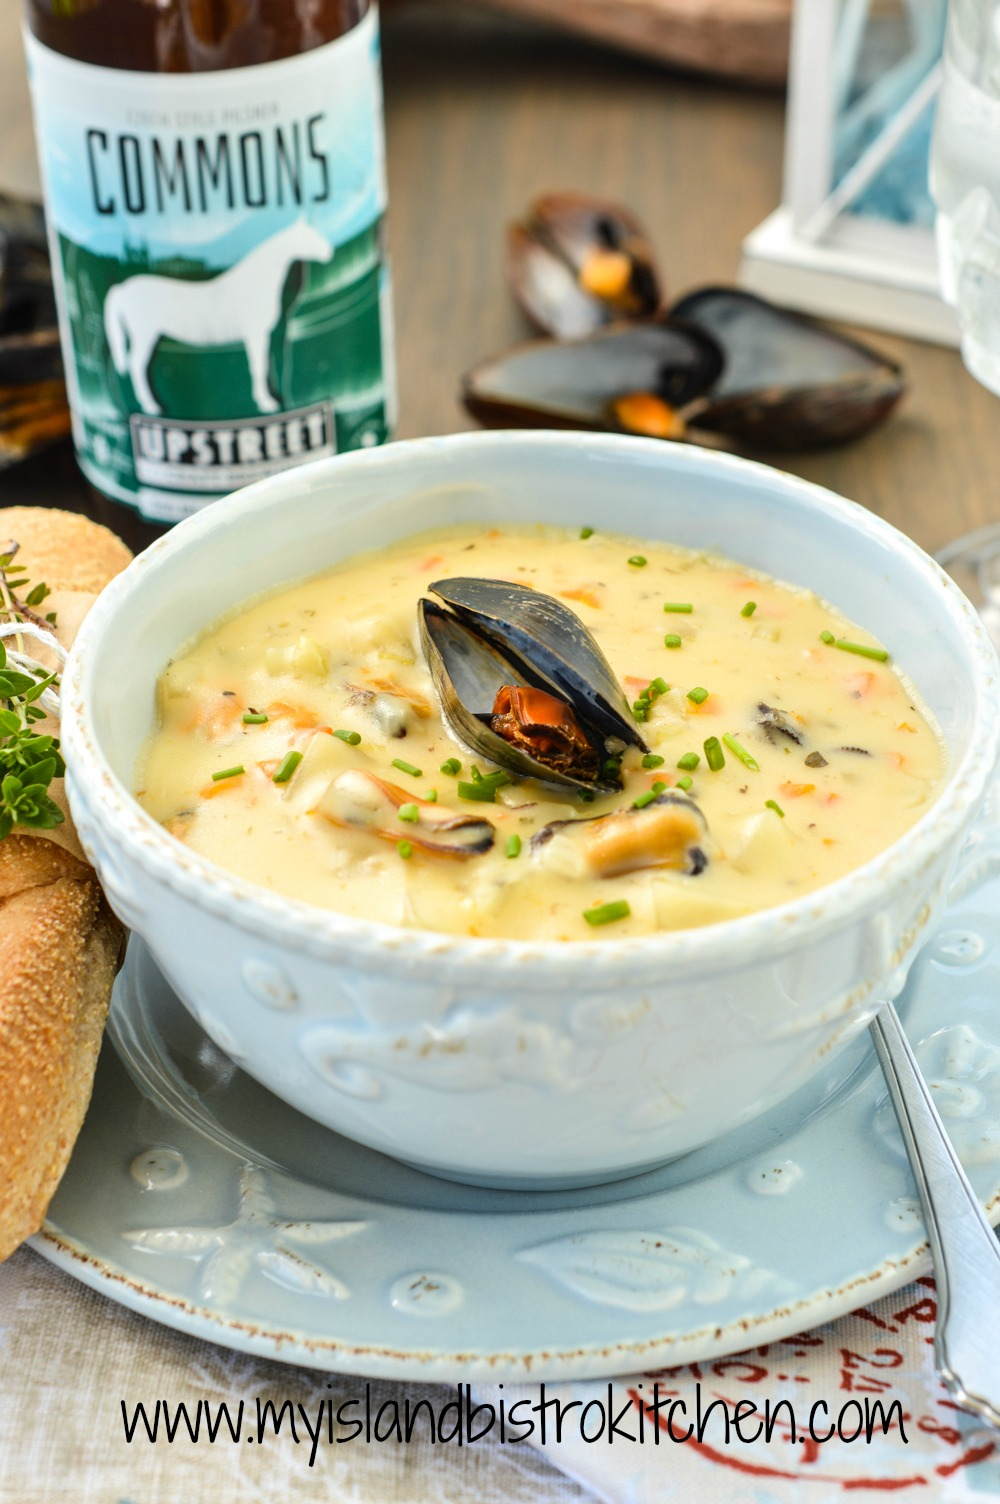 PEI Mussel Chowder Paired with Upstreet Brewing Company's Commons Czech Style Pilsner